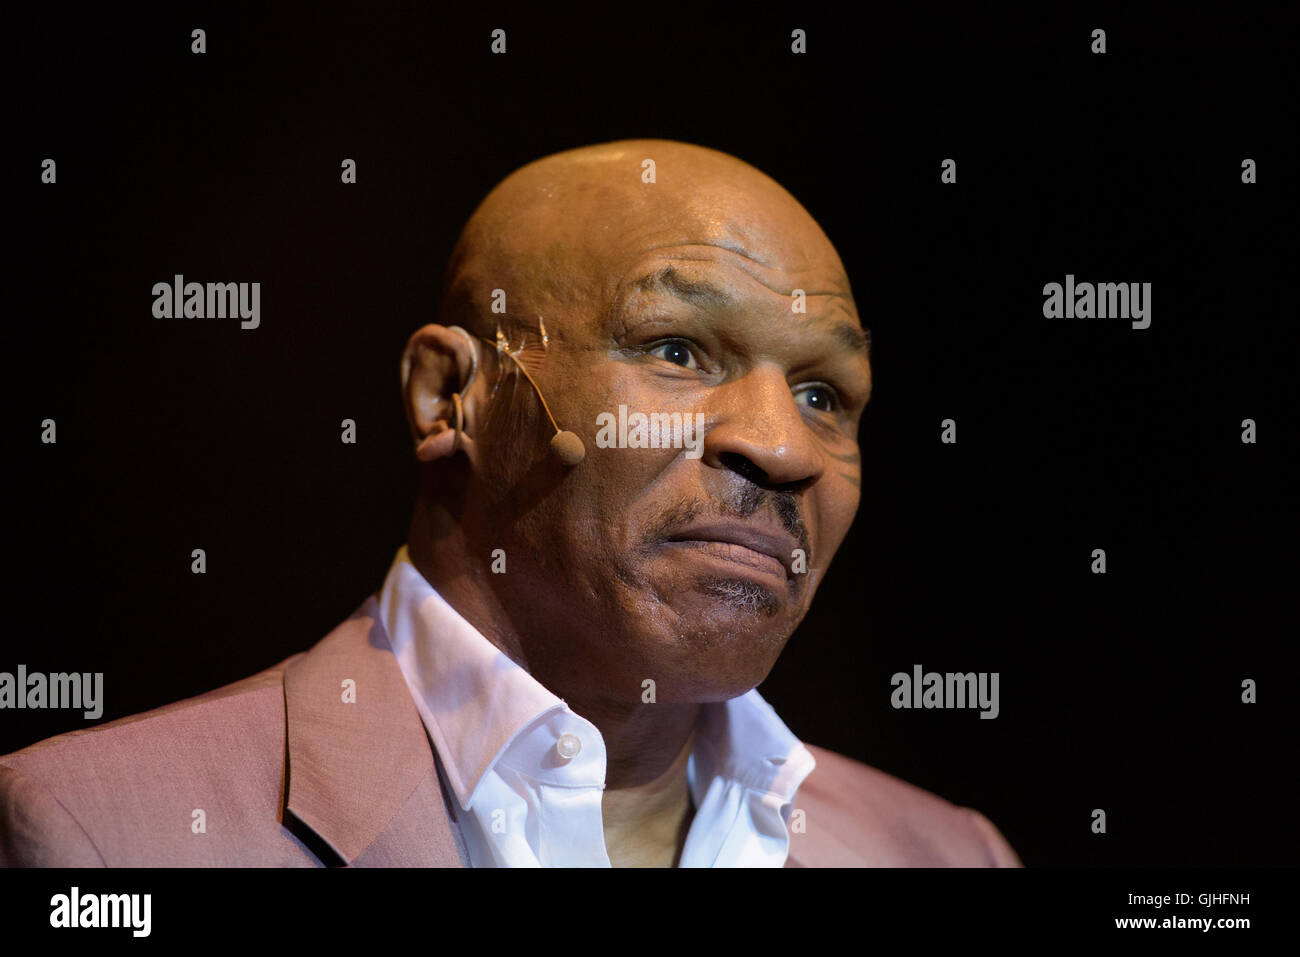 Buenos Aires, Argentina - Jul 7, 2016: Mike Tyson during his show Undisputed Truth at the Luna Park Stadium. Anton - Stock Image